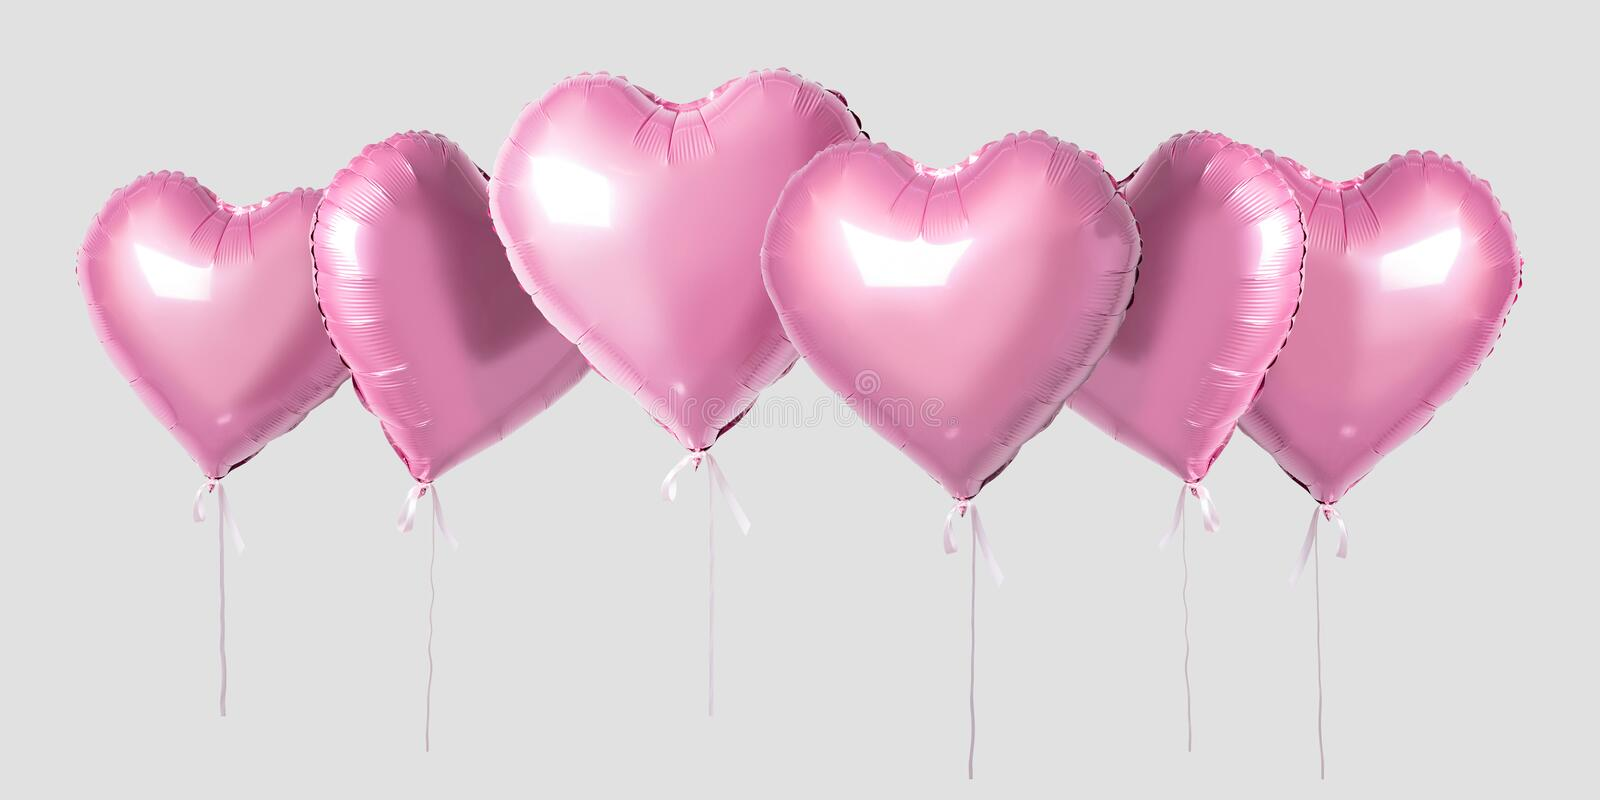 Bunch of pink color heart shaped foil balloons isolated on bright background. Minimal love concept.  royalty free stock image